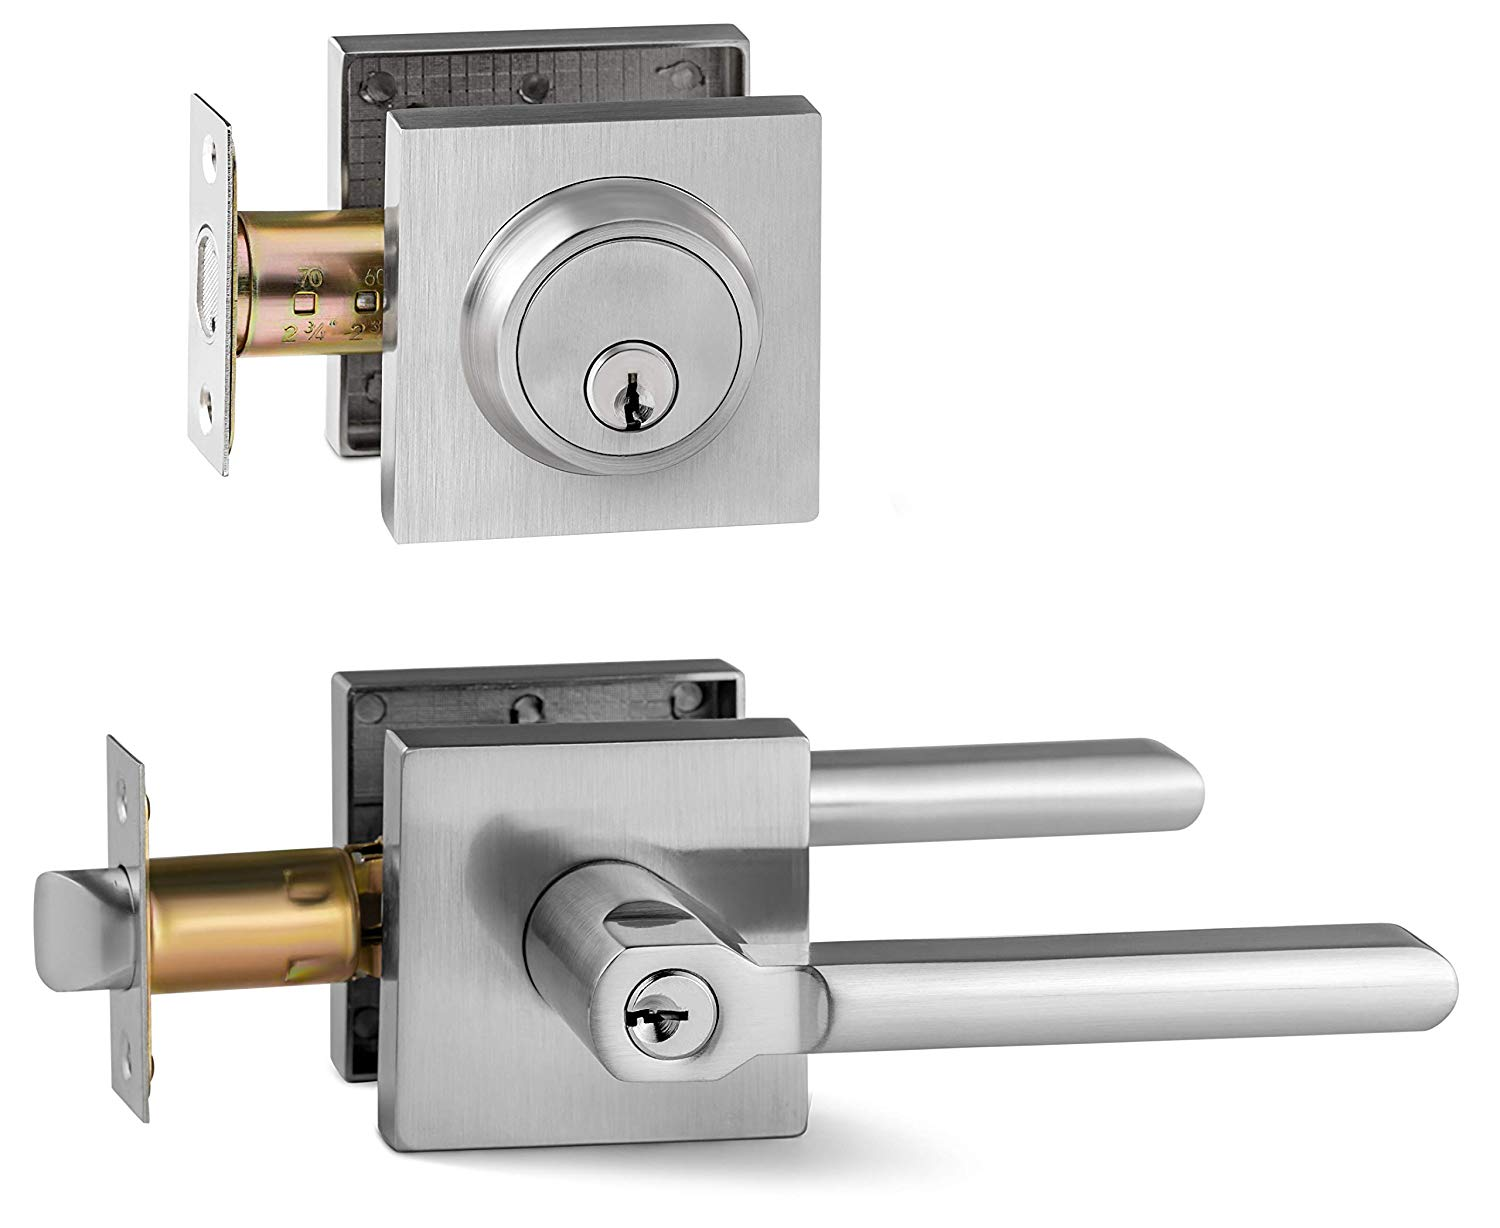 Berlin Modisch Entry Lever Door Handle and Single Cylinder Deadbolt Lock and Key Slim Square Locking Lever Handle Set [Front Door or Office] Right & Left Sided Doors Heavy Duty – Satin Nickel Finish